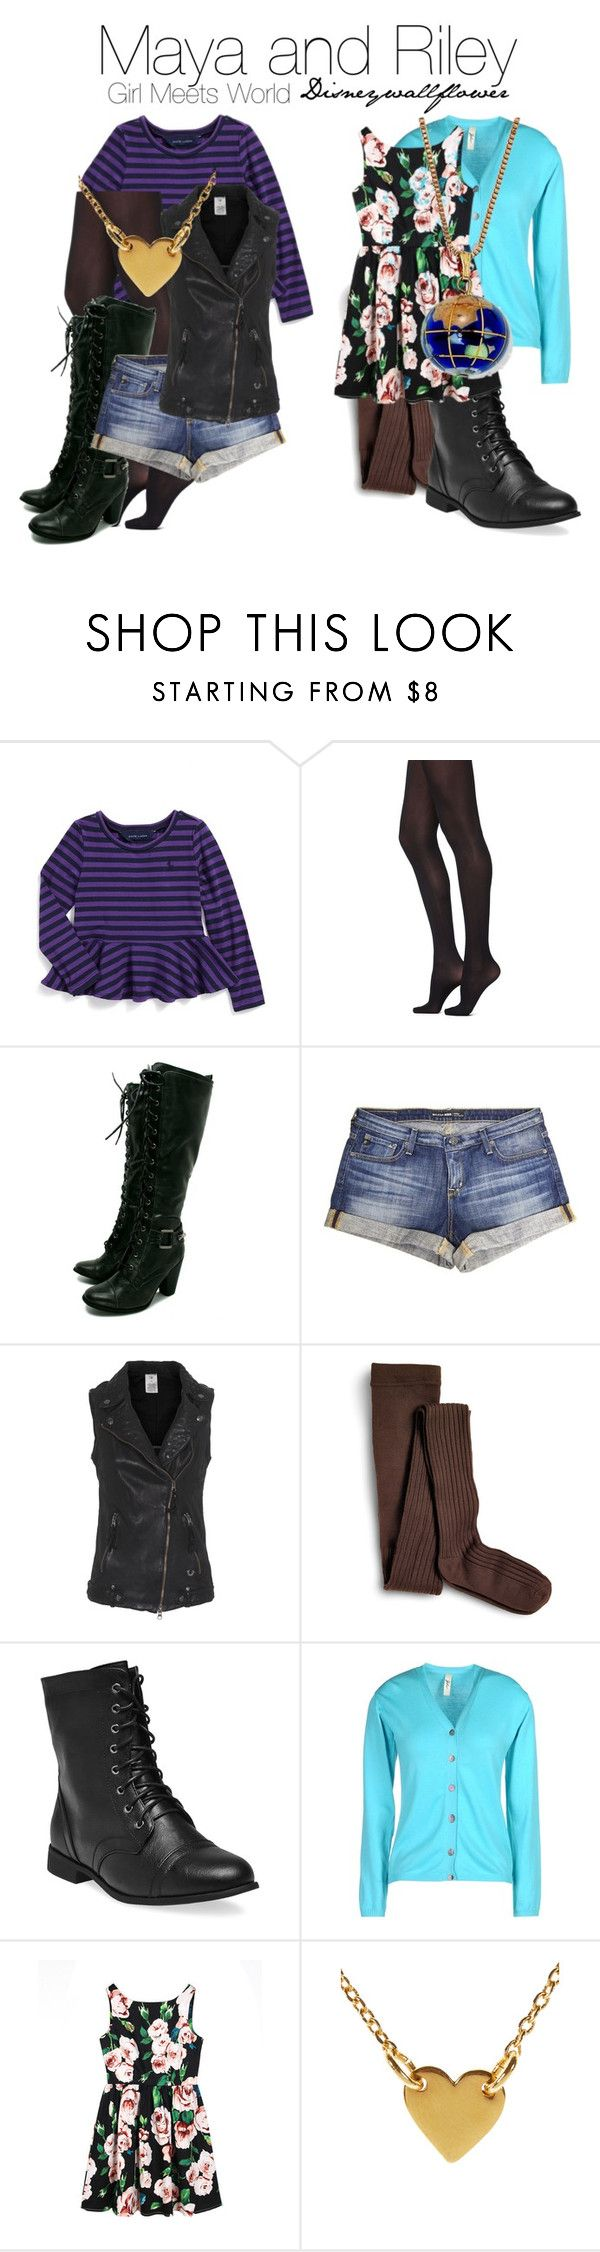 """""""Maya and Riley- Girl Meets World"""" by disneywallflower ❤ liked on Polyvore featuring Ralph Lauren, With Love From CA, Big Star, True Religion, Sperry Top-Sider, Wet Seal, Jolie By Edward Spiers, Chicnova Fashion, Accessorize and Palm Beach Jewelry"""